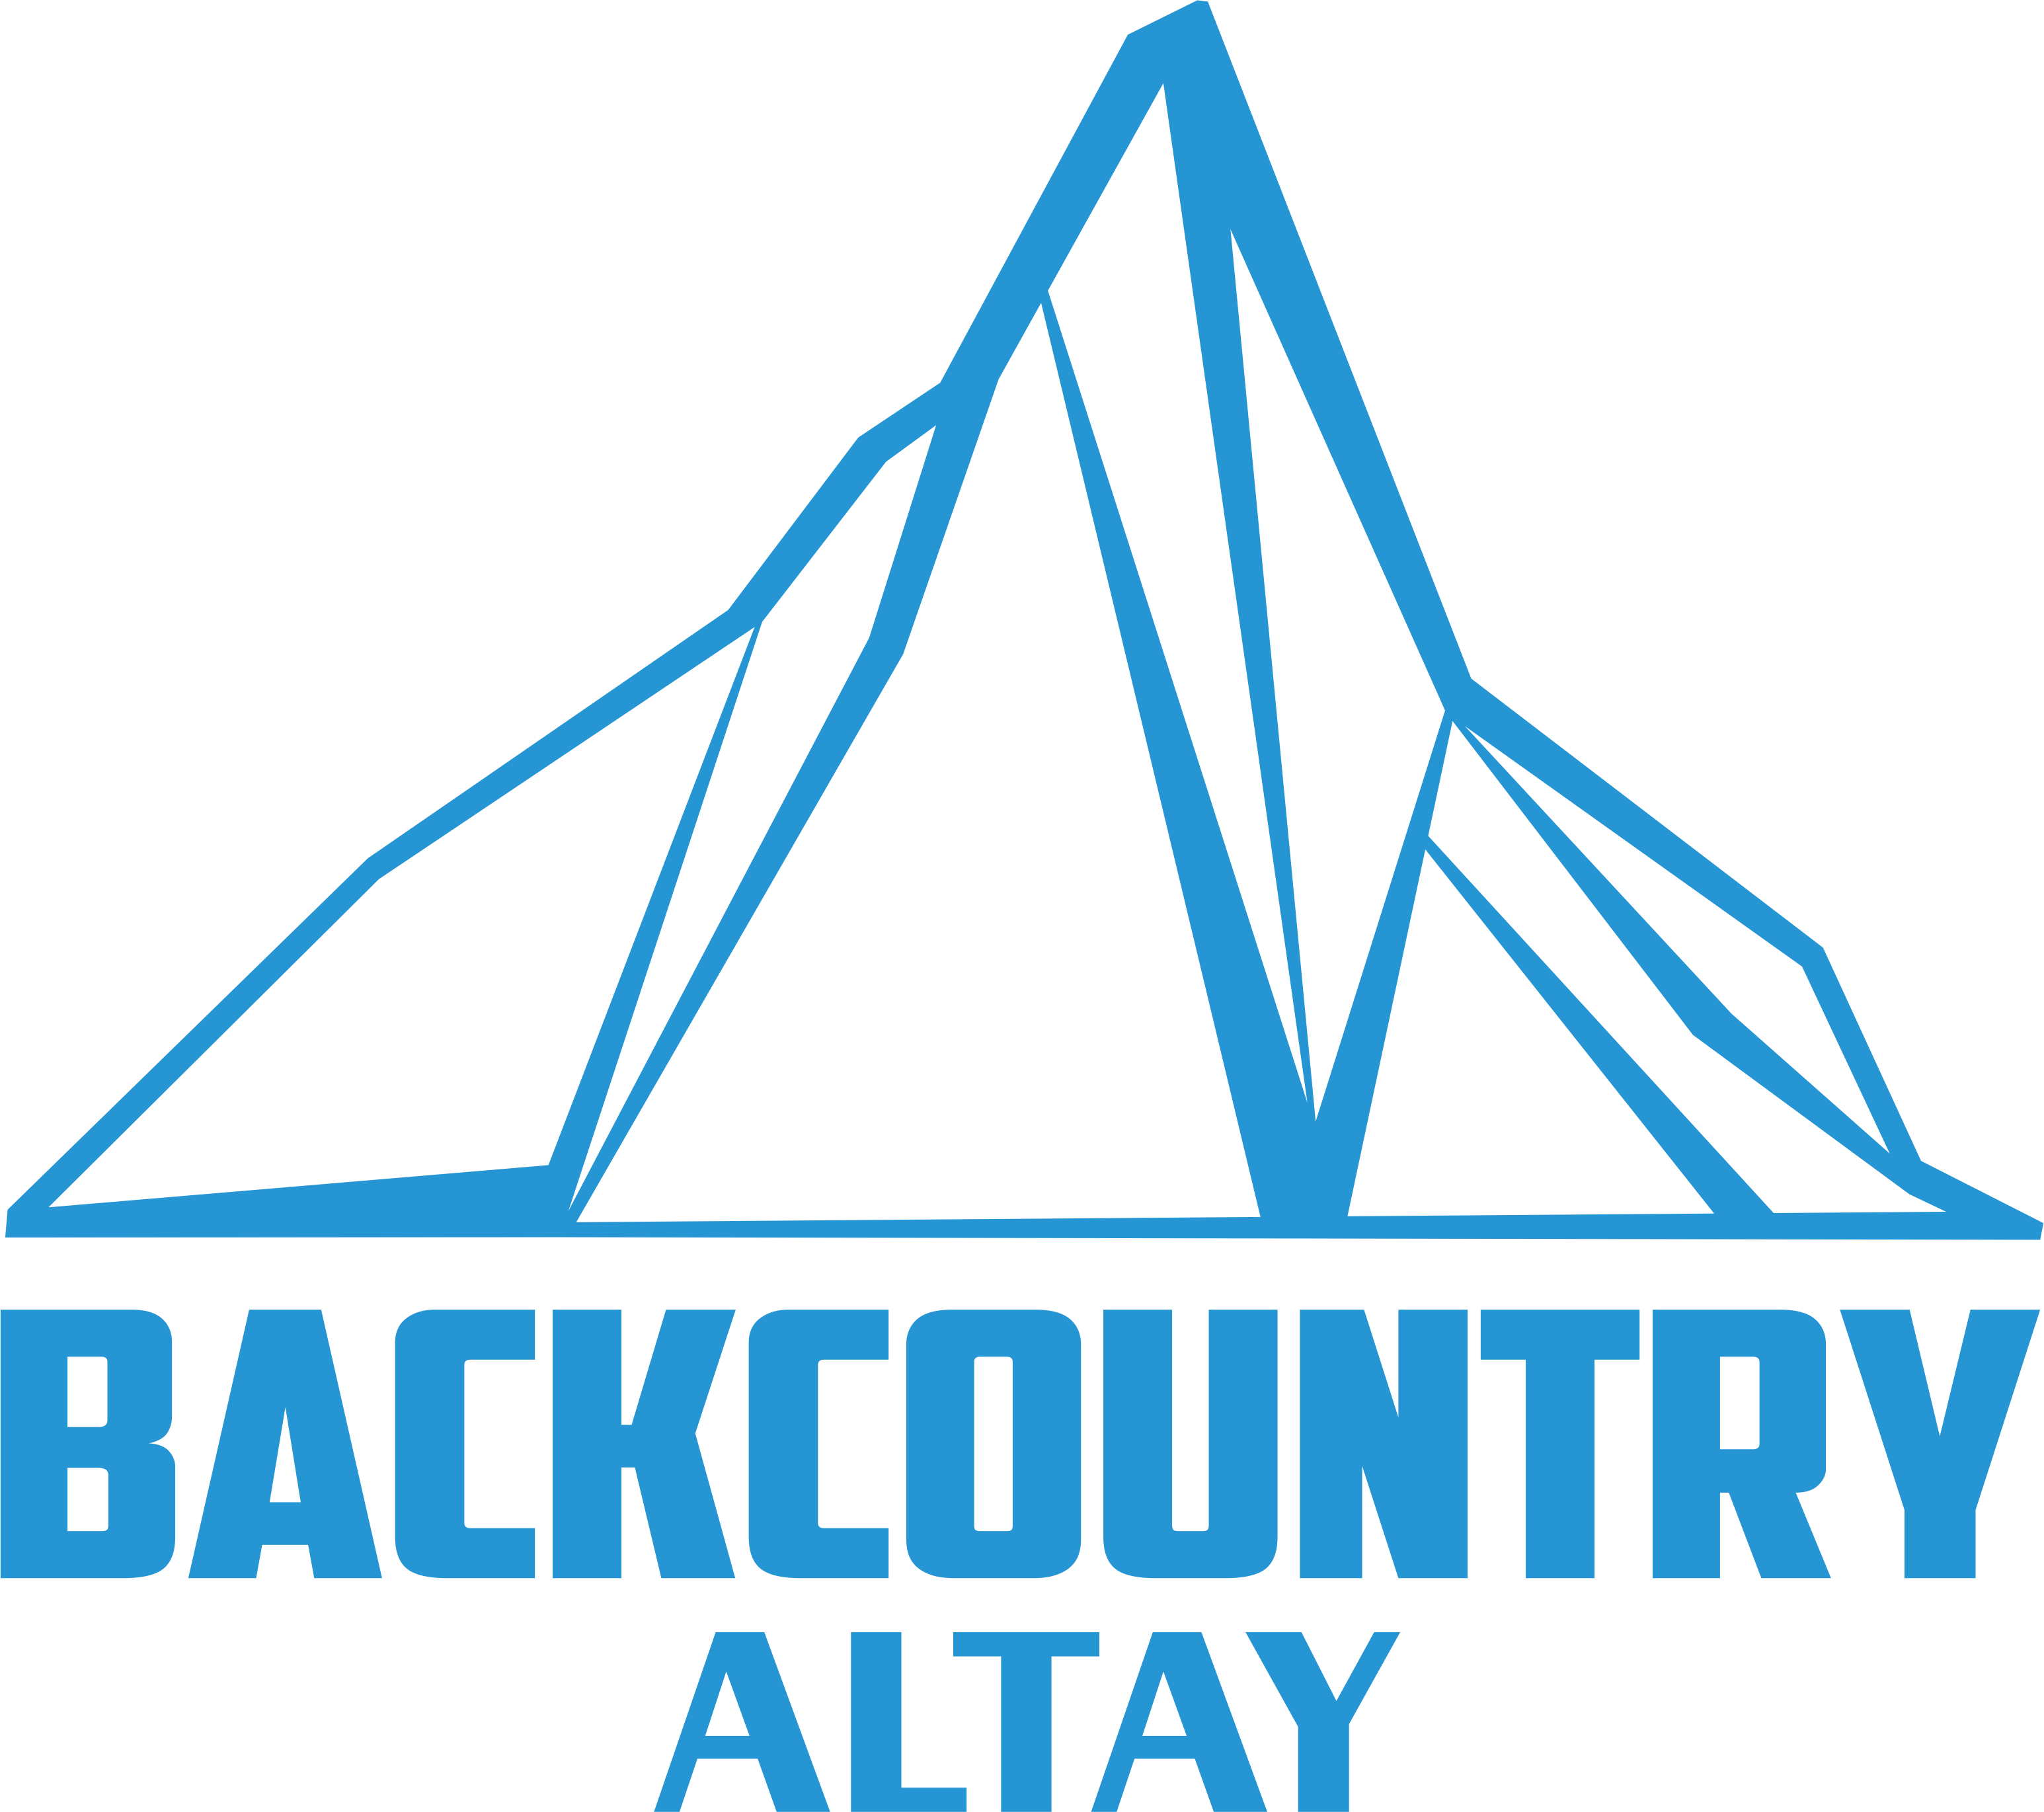 Altay backcountry (Altay Backcountry)